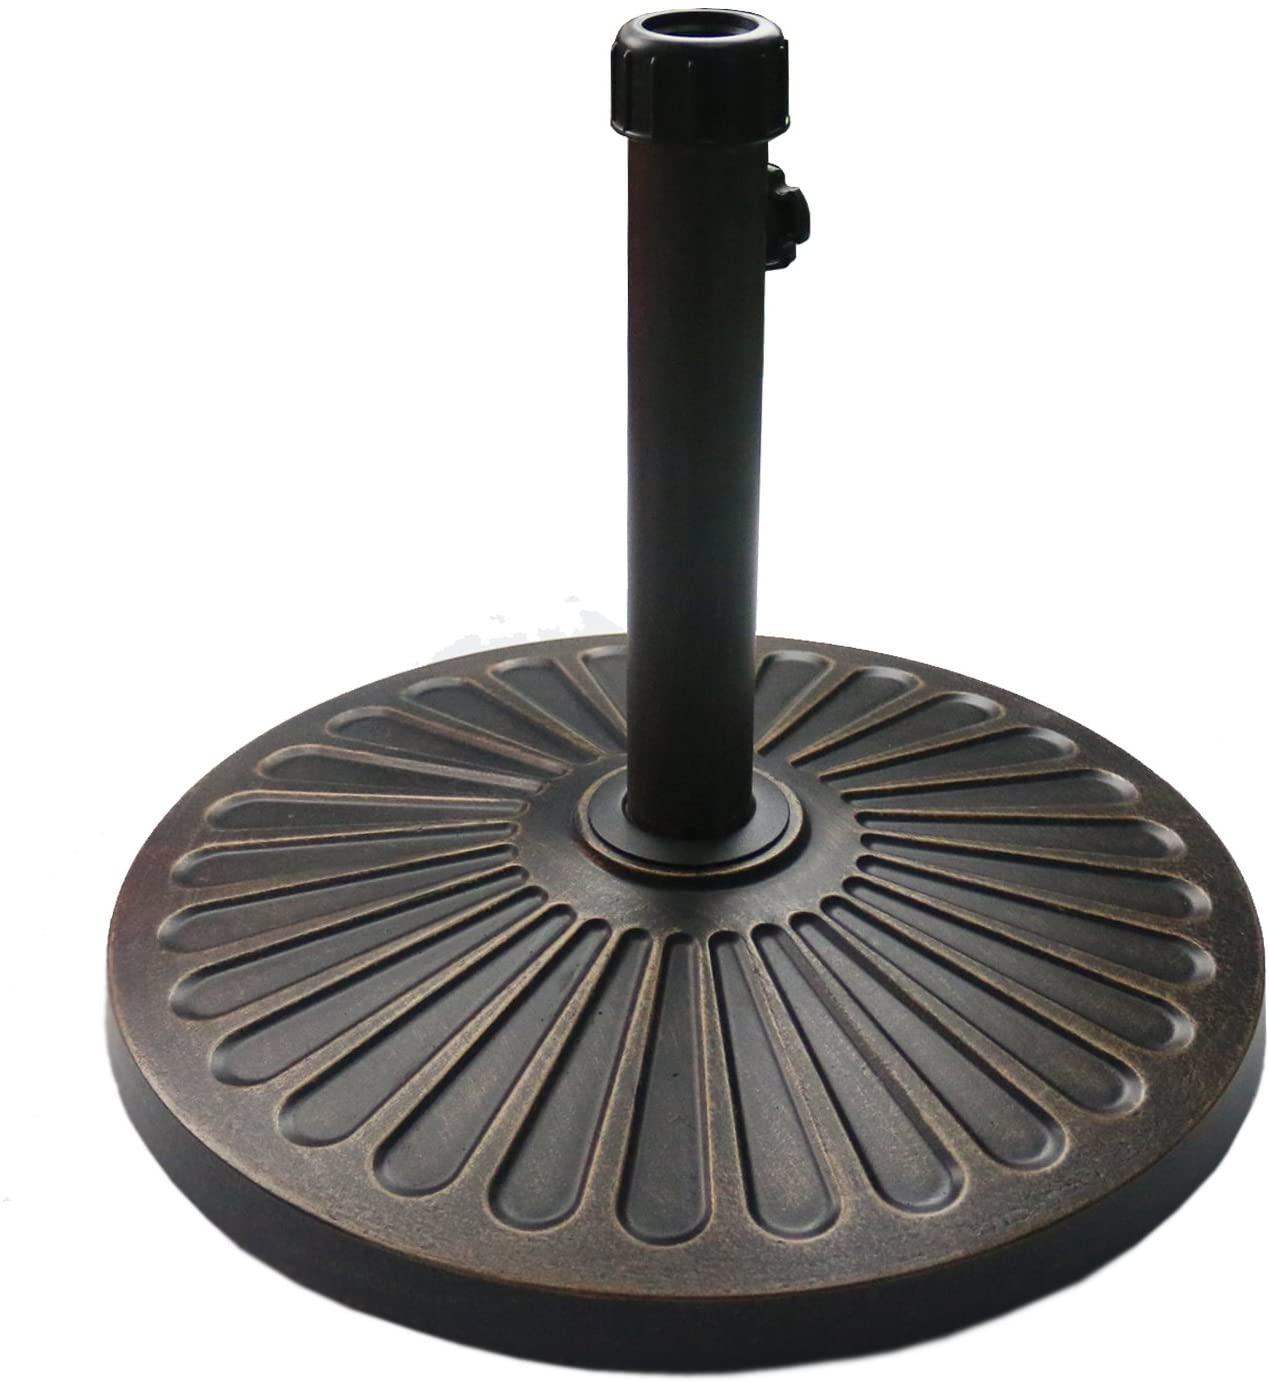 Sunnyglade Round Heavy Duty Antiqued Umbrella Base for Patio